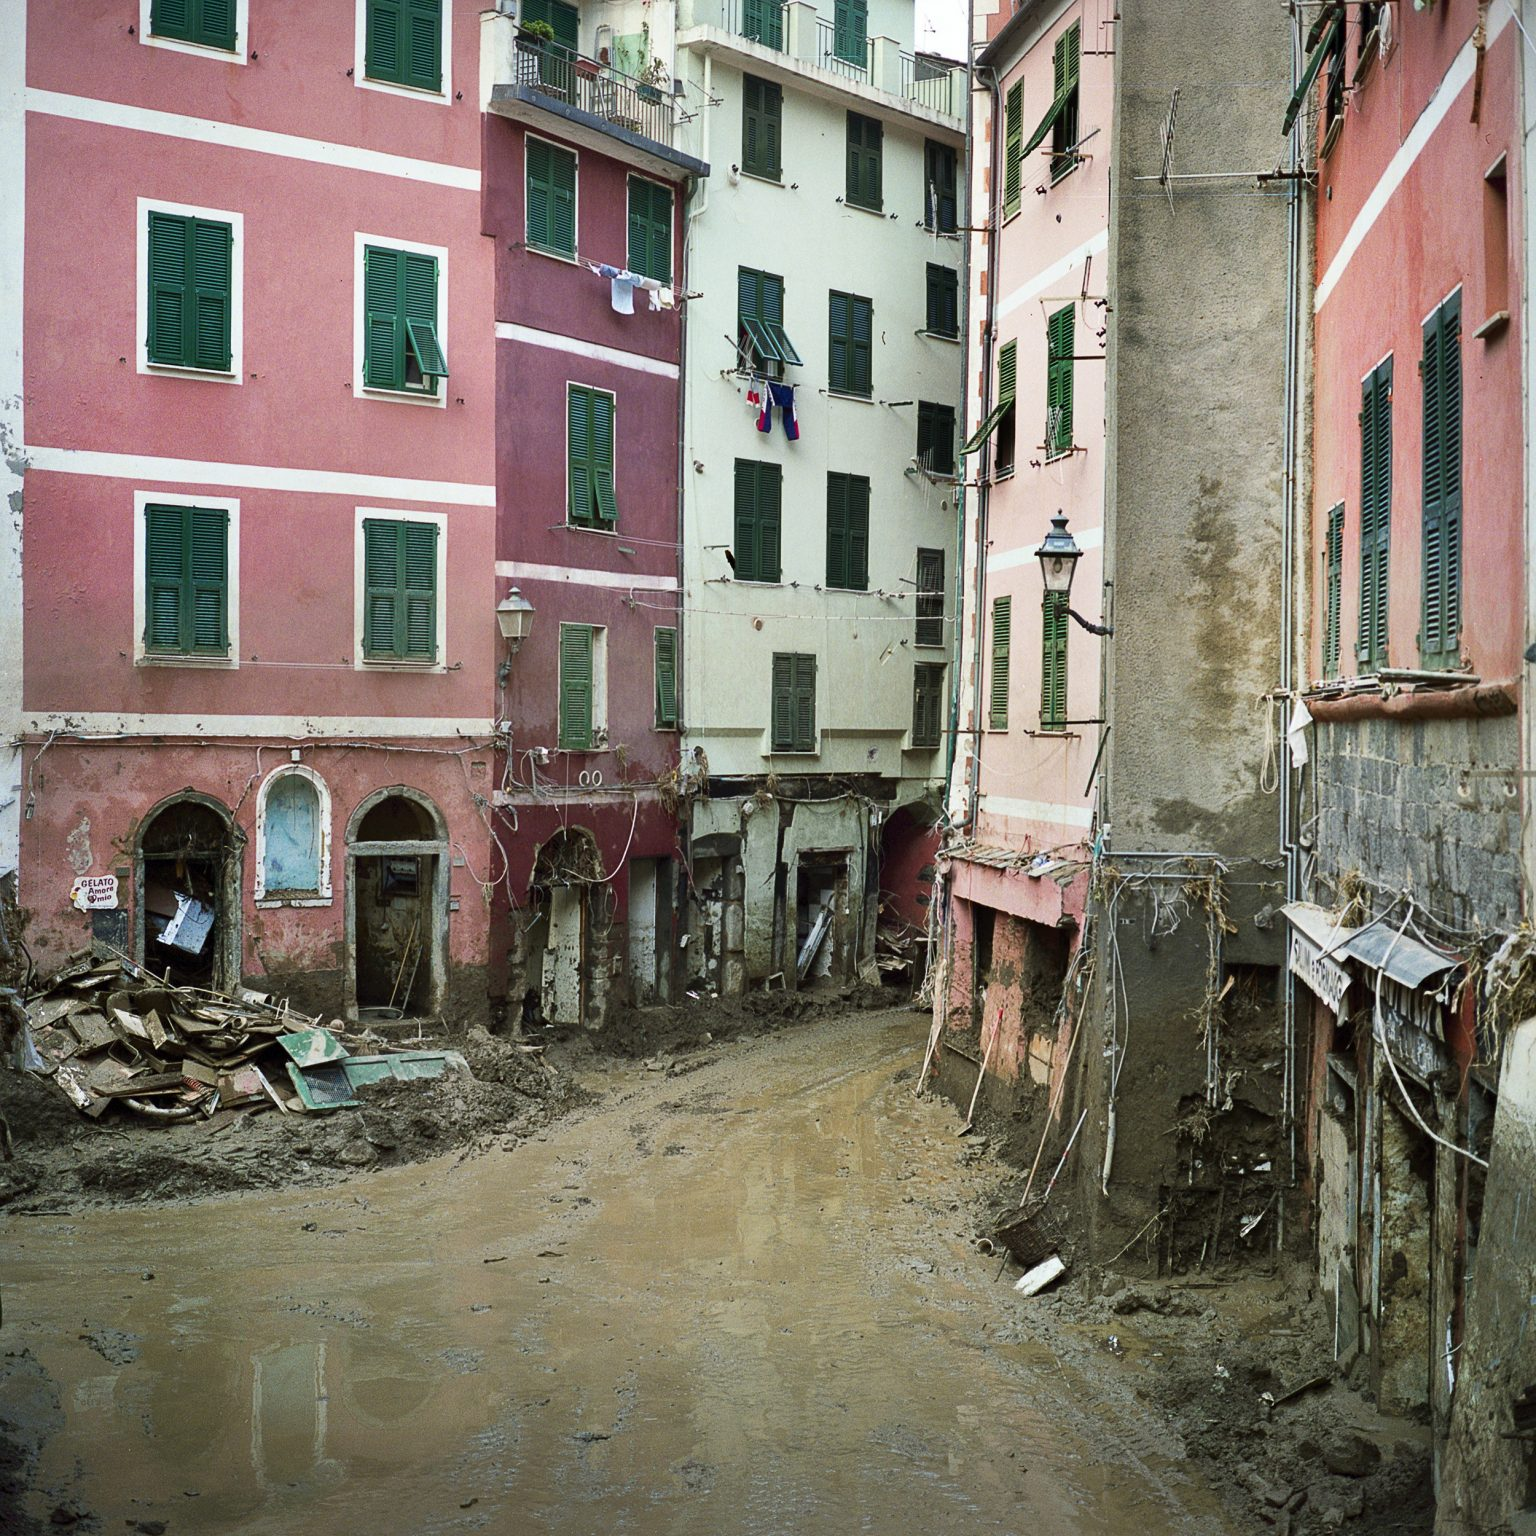 Vernazza, November 2011. After the intense rain the town was hit by a severe flood that caused much damage to the buildings and economic activities.